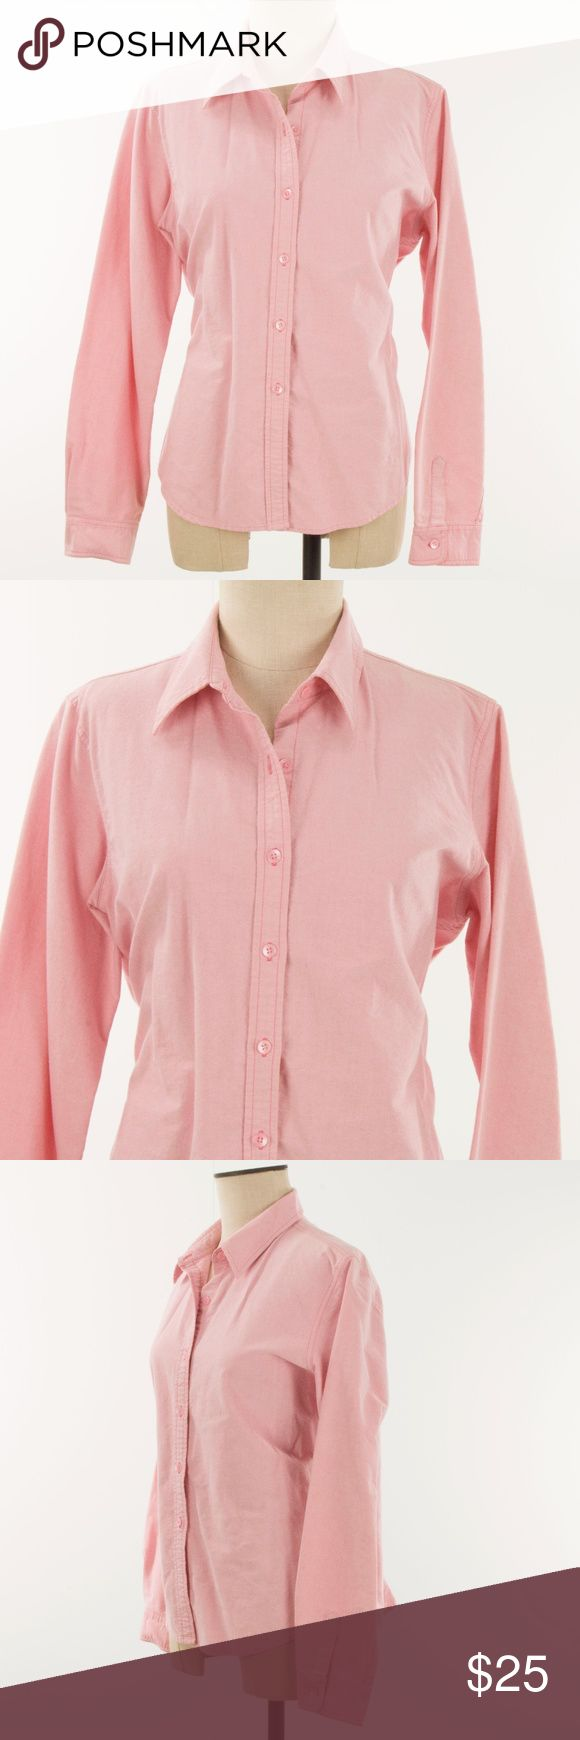 "J Crew Women Shirt Size XL Button Down Pink J Crew Women Shirt Size XL Button Down Pink Oxford Cotton Long Sleeve Sizes vary. Please check measurements below to ensure a proper fit.  Measurements: Chest (measured armpit to armpit):  18.5"" Length (measured from back at top of collar to edge): 27.5"" Sleeve Length (shoulder seam to end of sleeve): 23.5"" J Crew Tops Button Down Shirts"